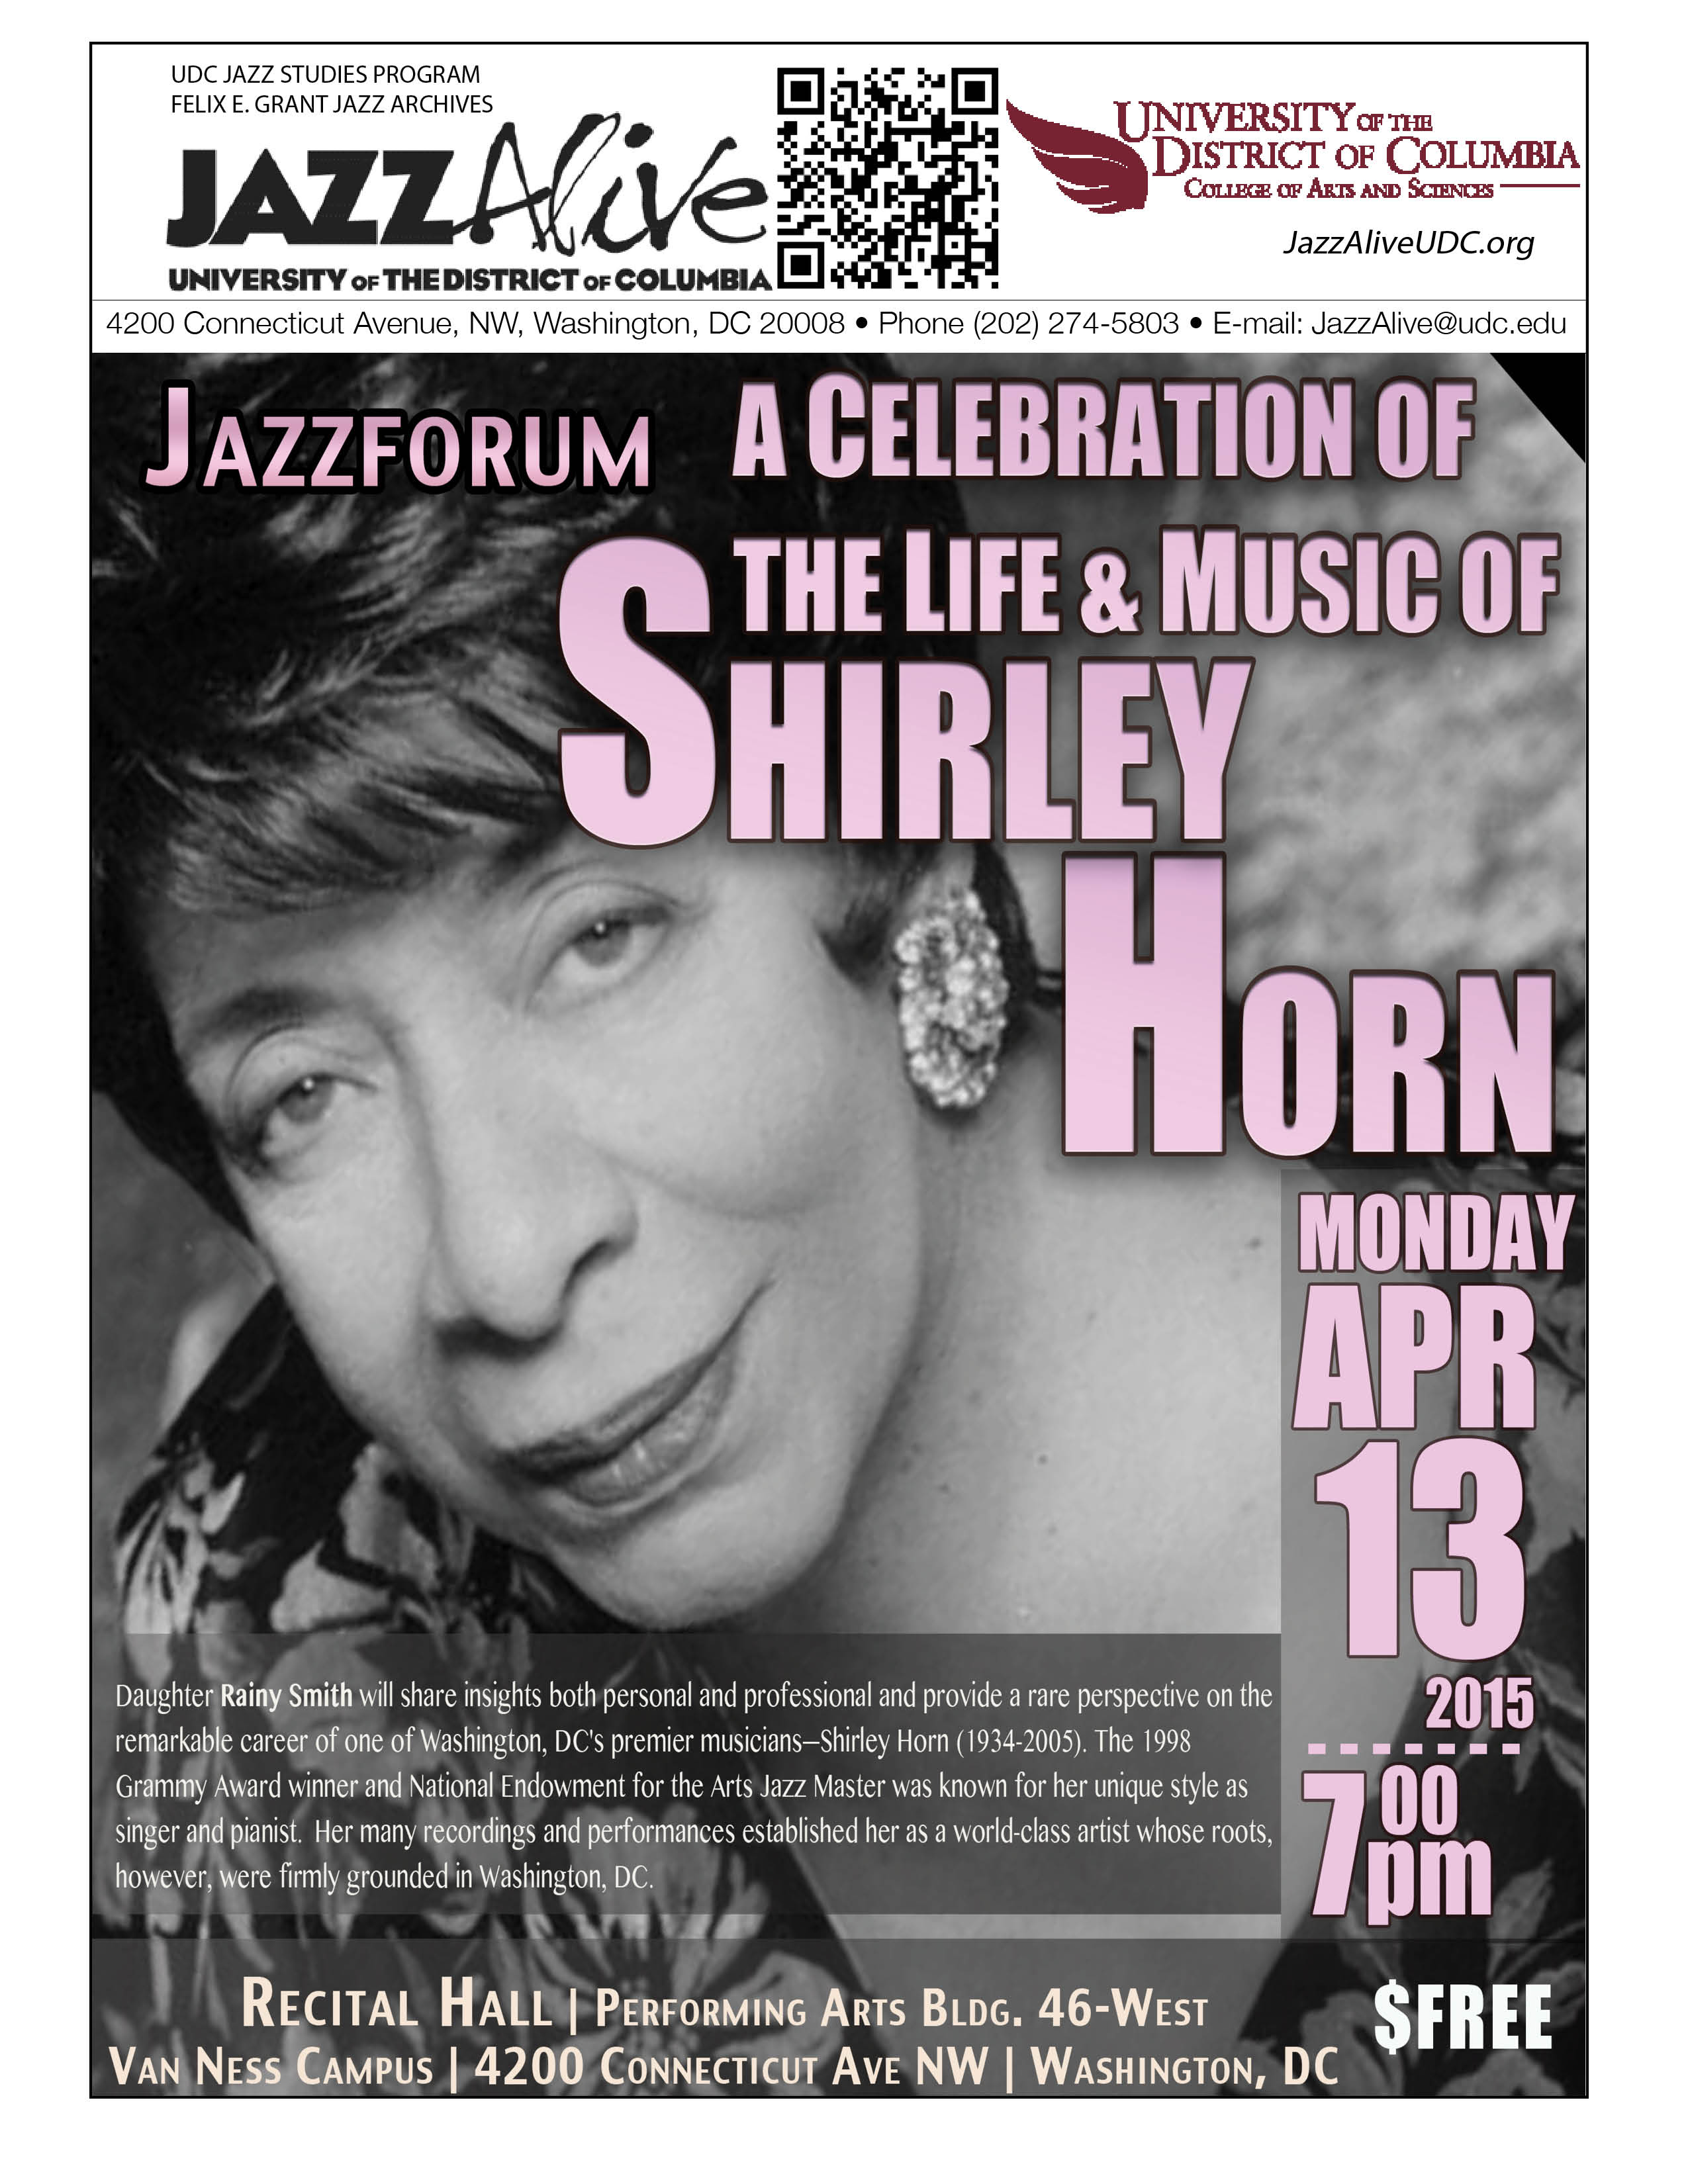 Jazzforum: a Celebration of the Life & Music of Shirley Horn - Monday, April 13, 2015, 7:00pm